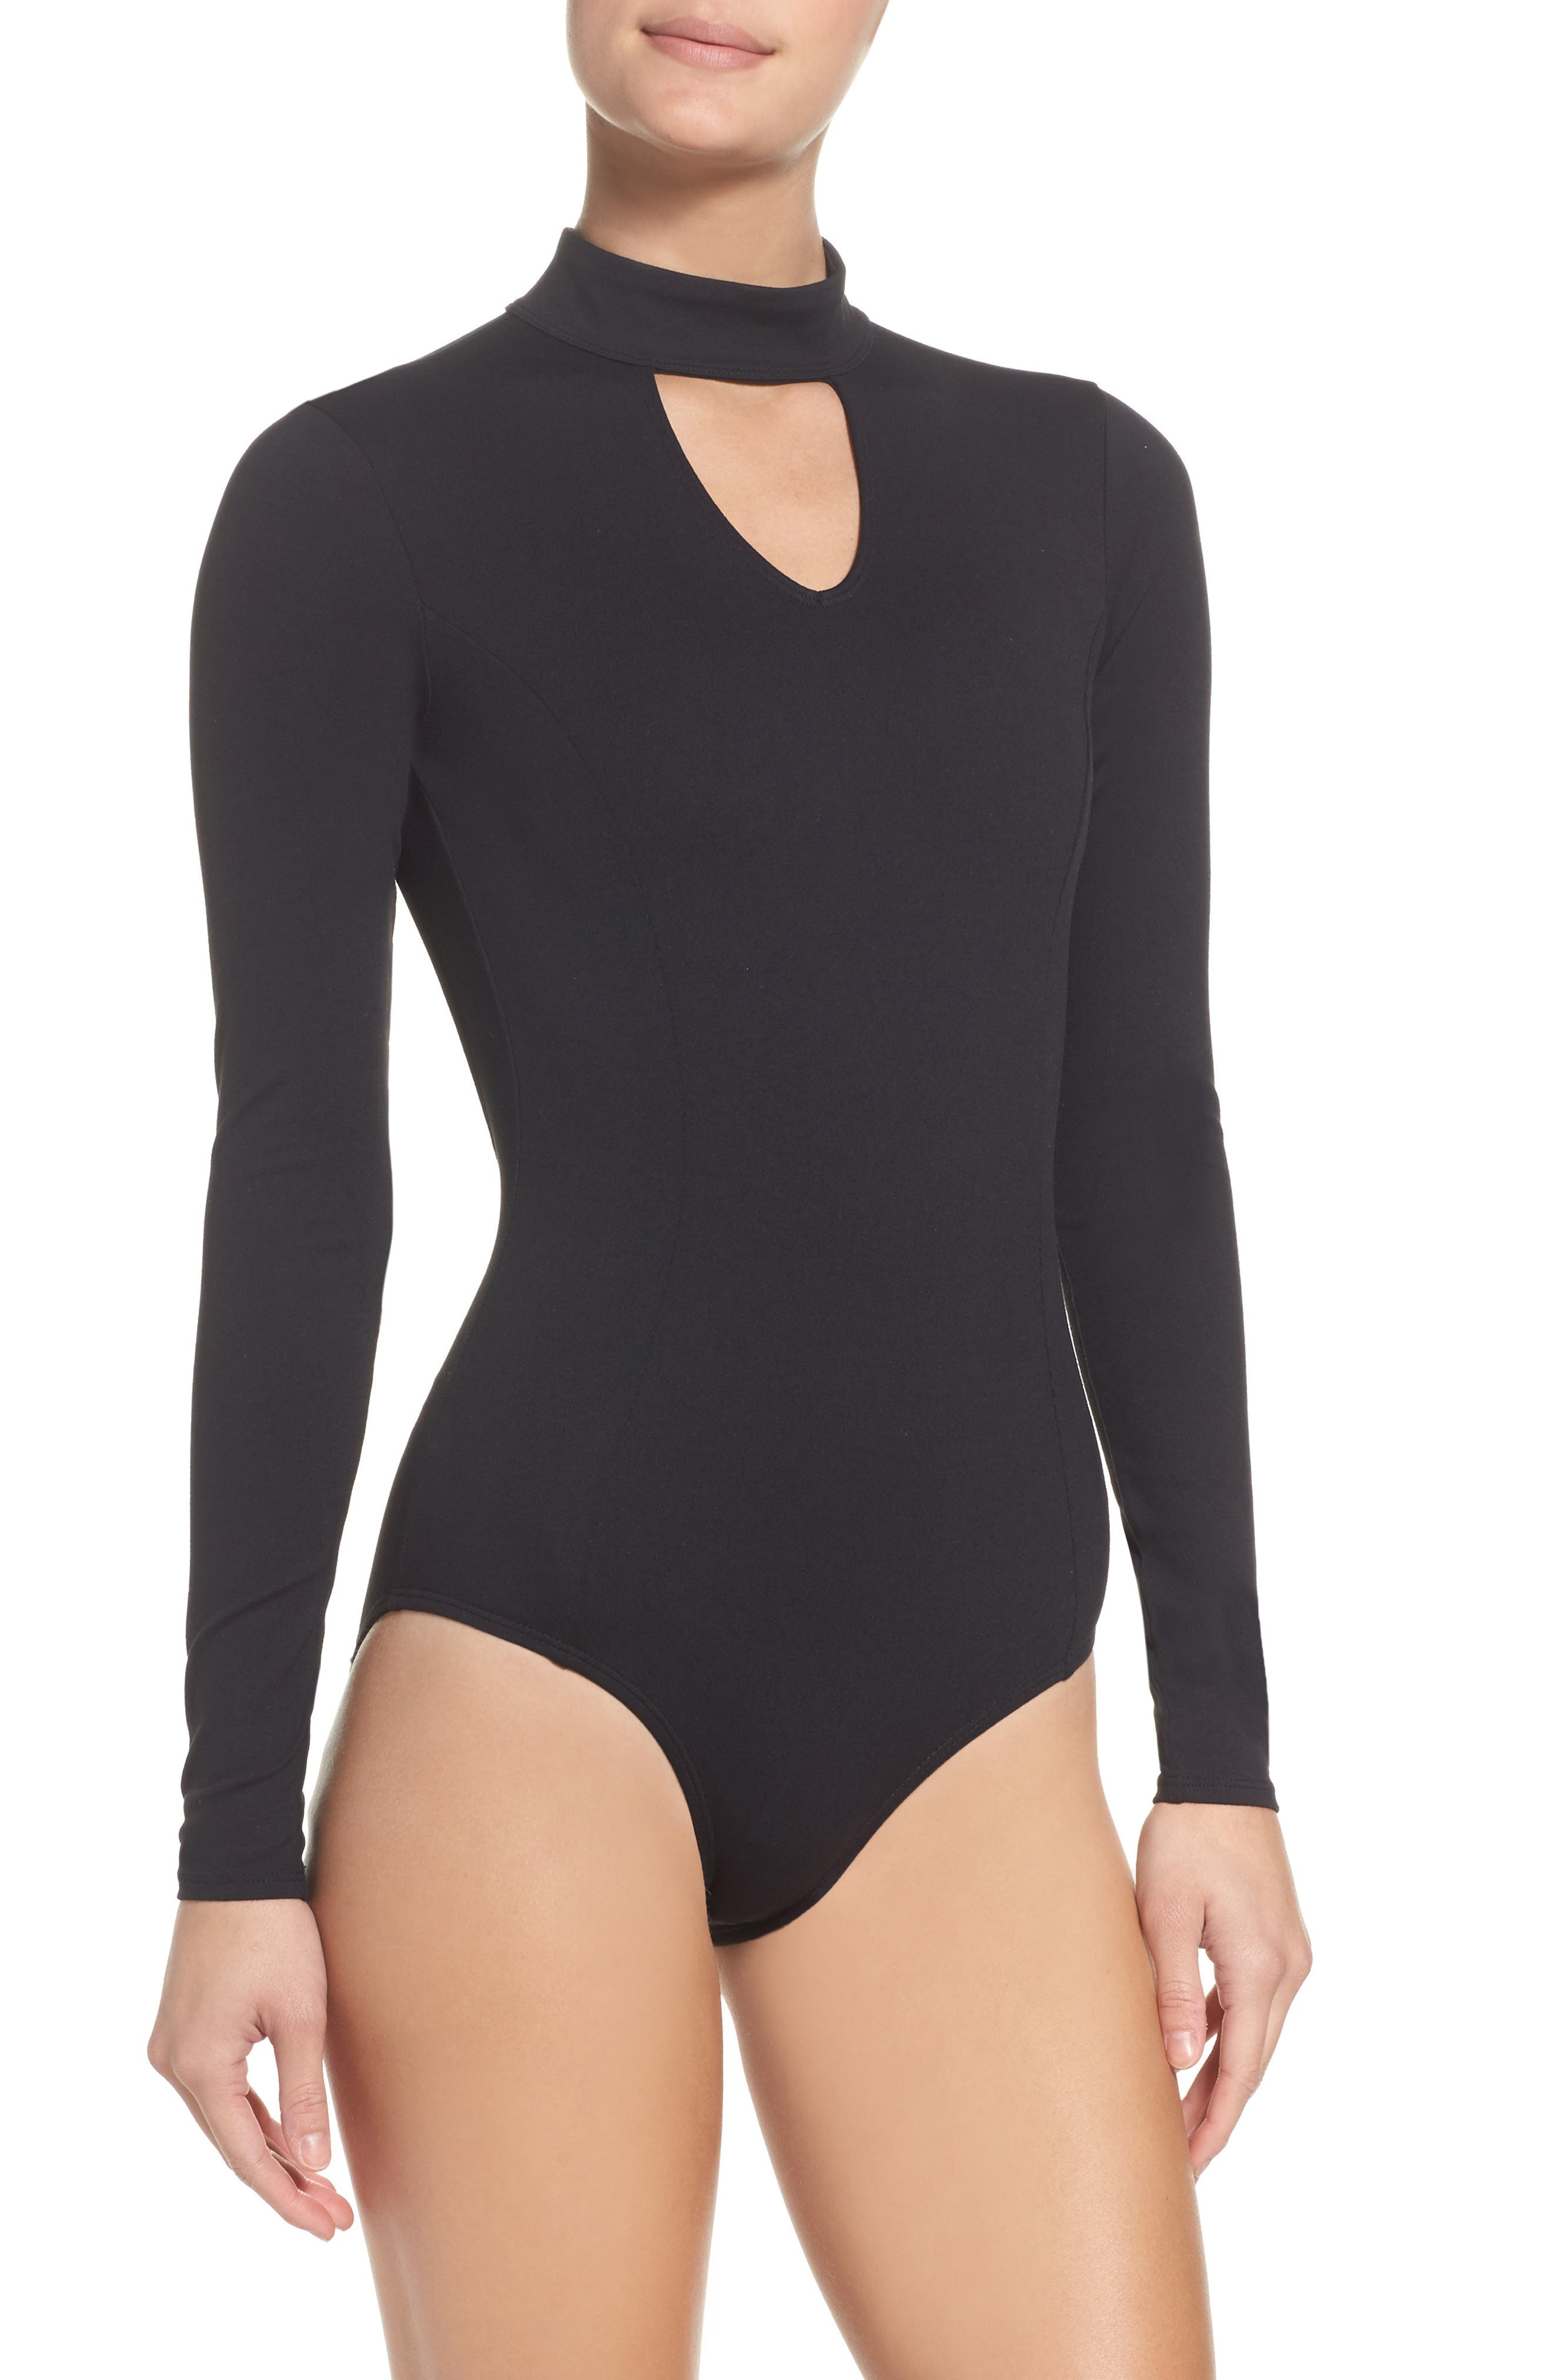 So Flawless Keyhole Bodysuit,                             Main thumbnail 1, color,                             Black